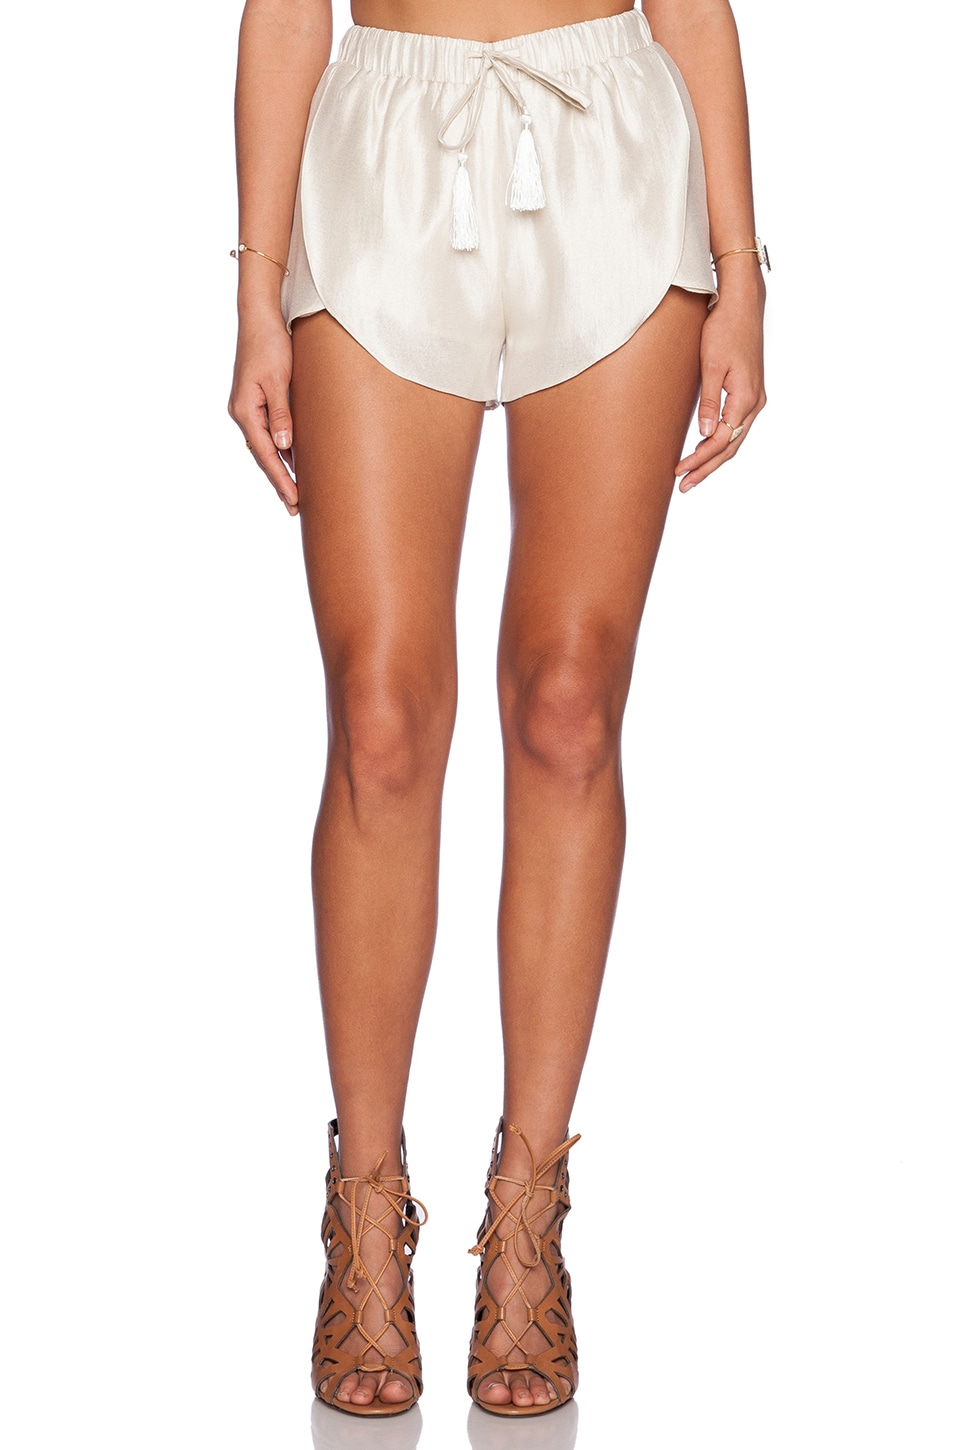 The Allflower Creative Expedition Shorts in Cream